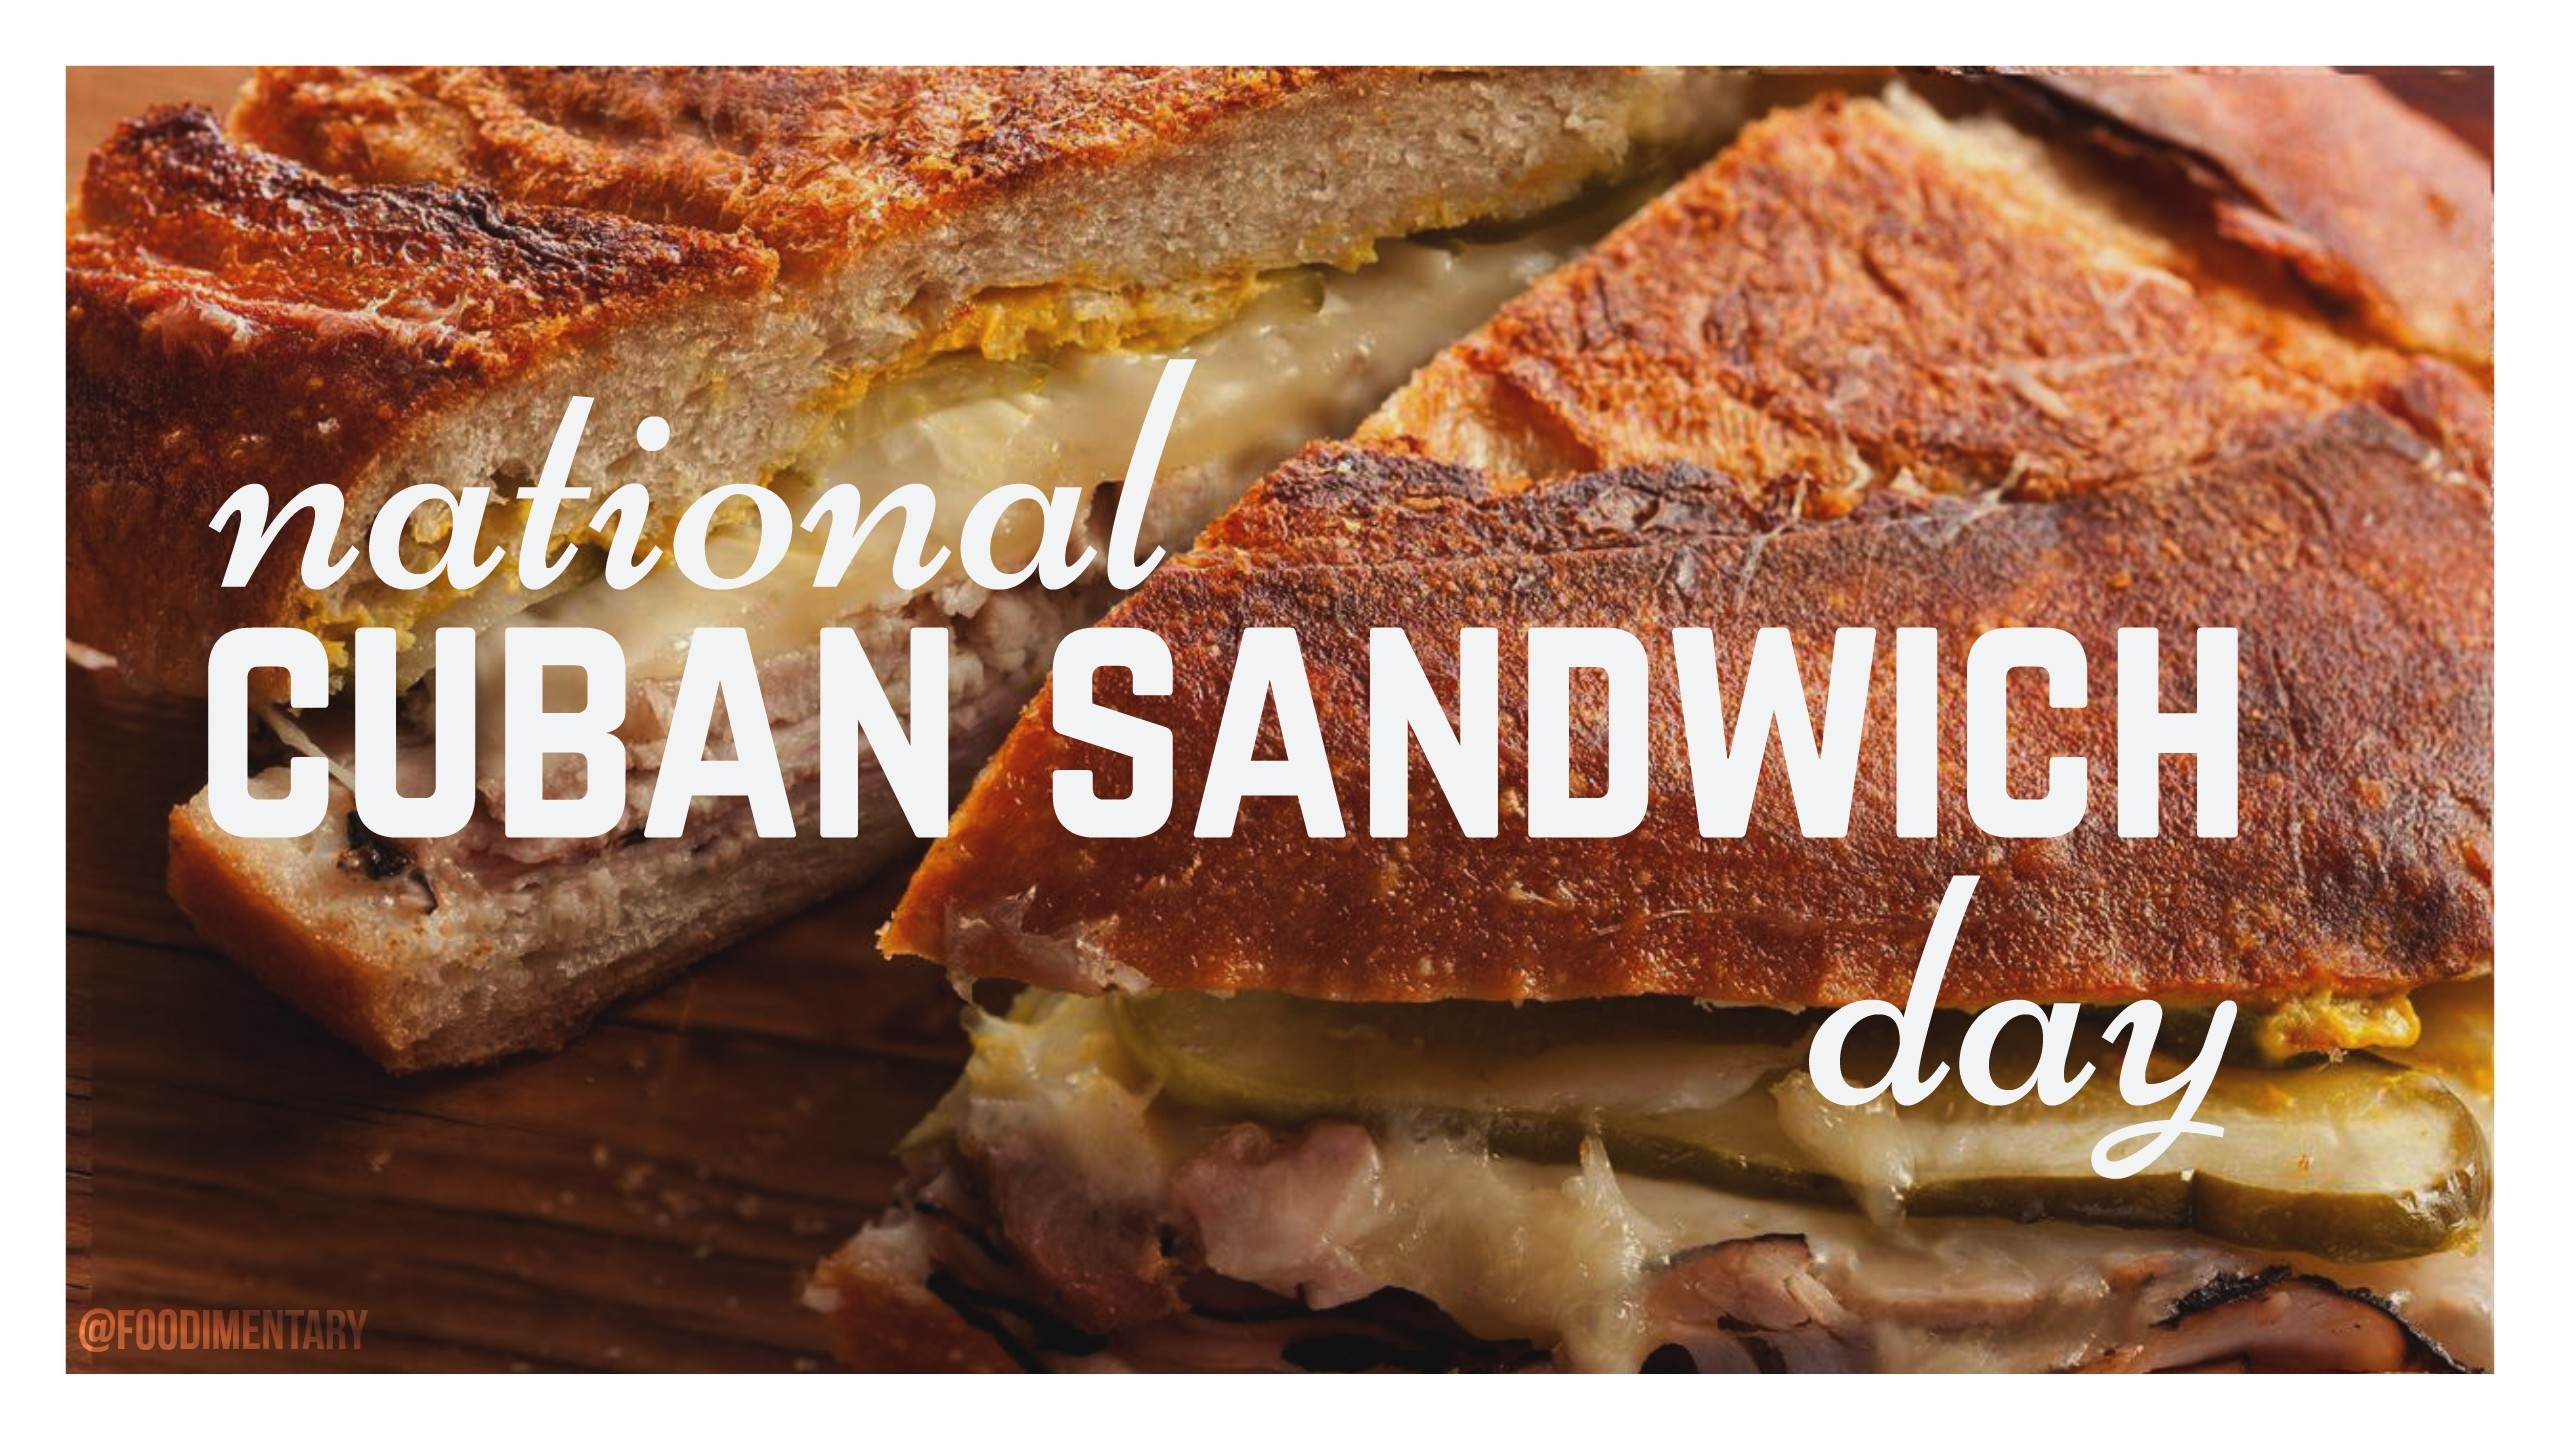 August 23Rd Is National Cuban Sandwich Day! | Foodimentary inside Images National Day August 23